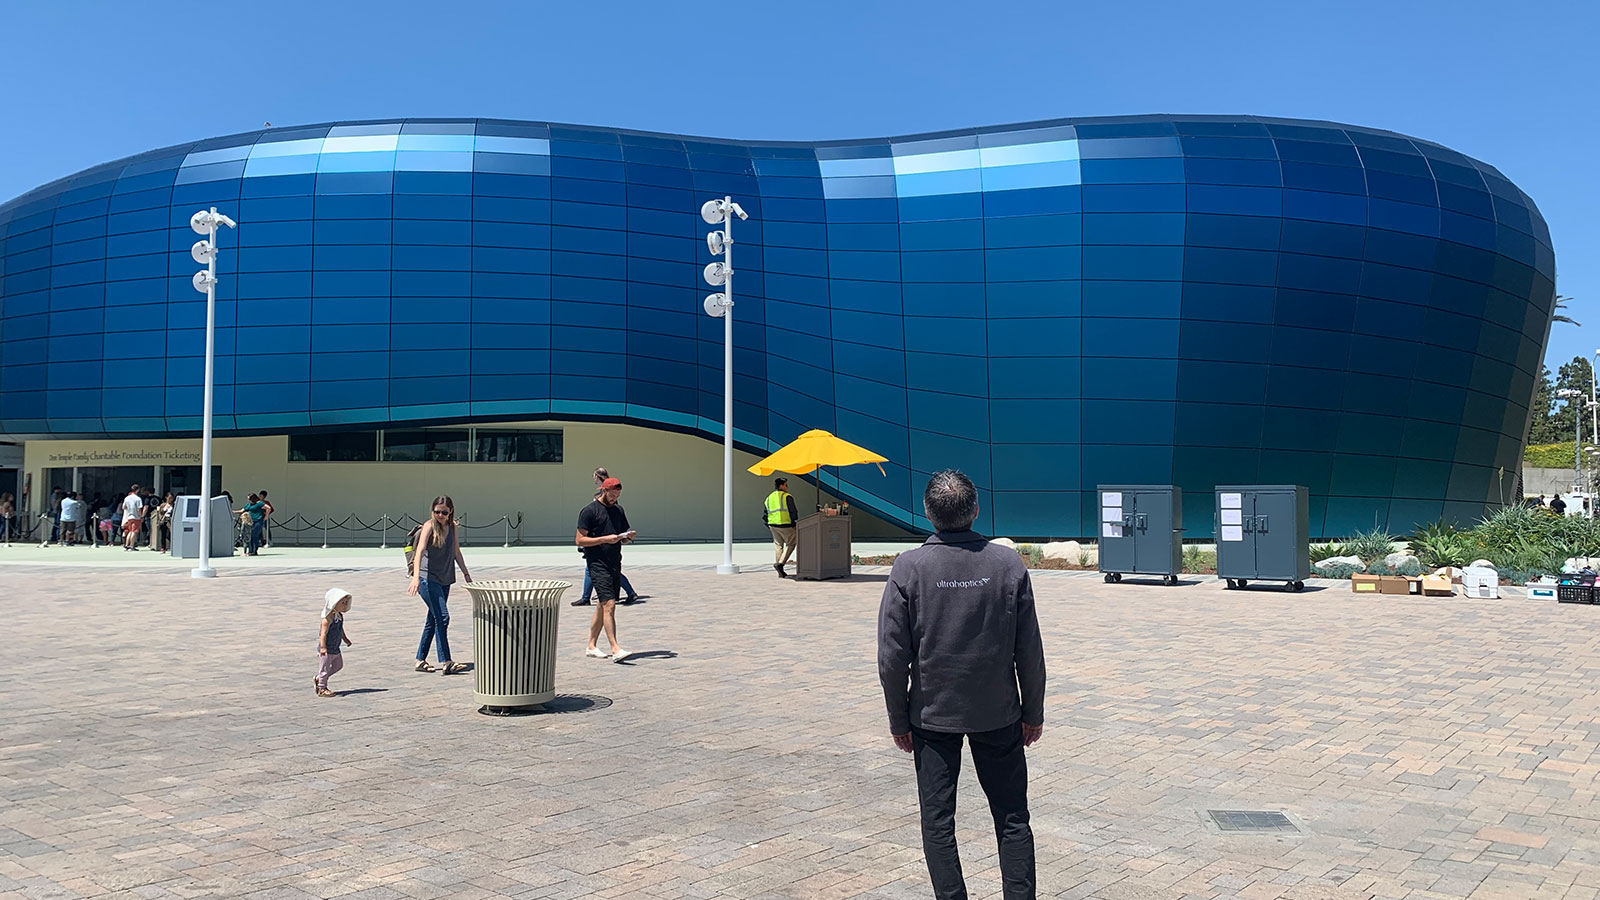 Outside of the Honda Pacific Visions Theater at the Aquarium of the Pacific in Long Beach, California